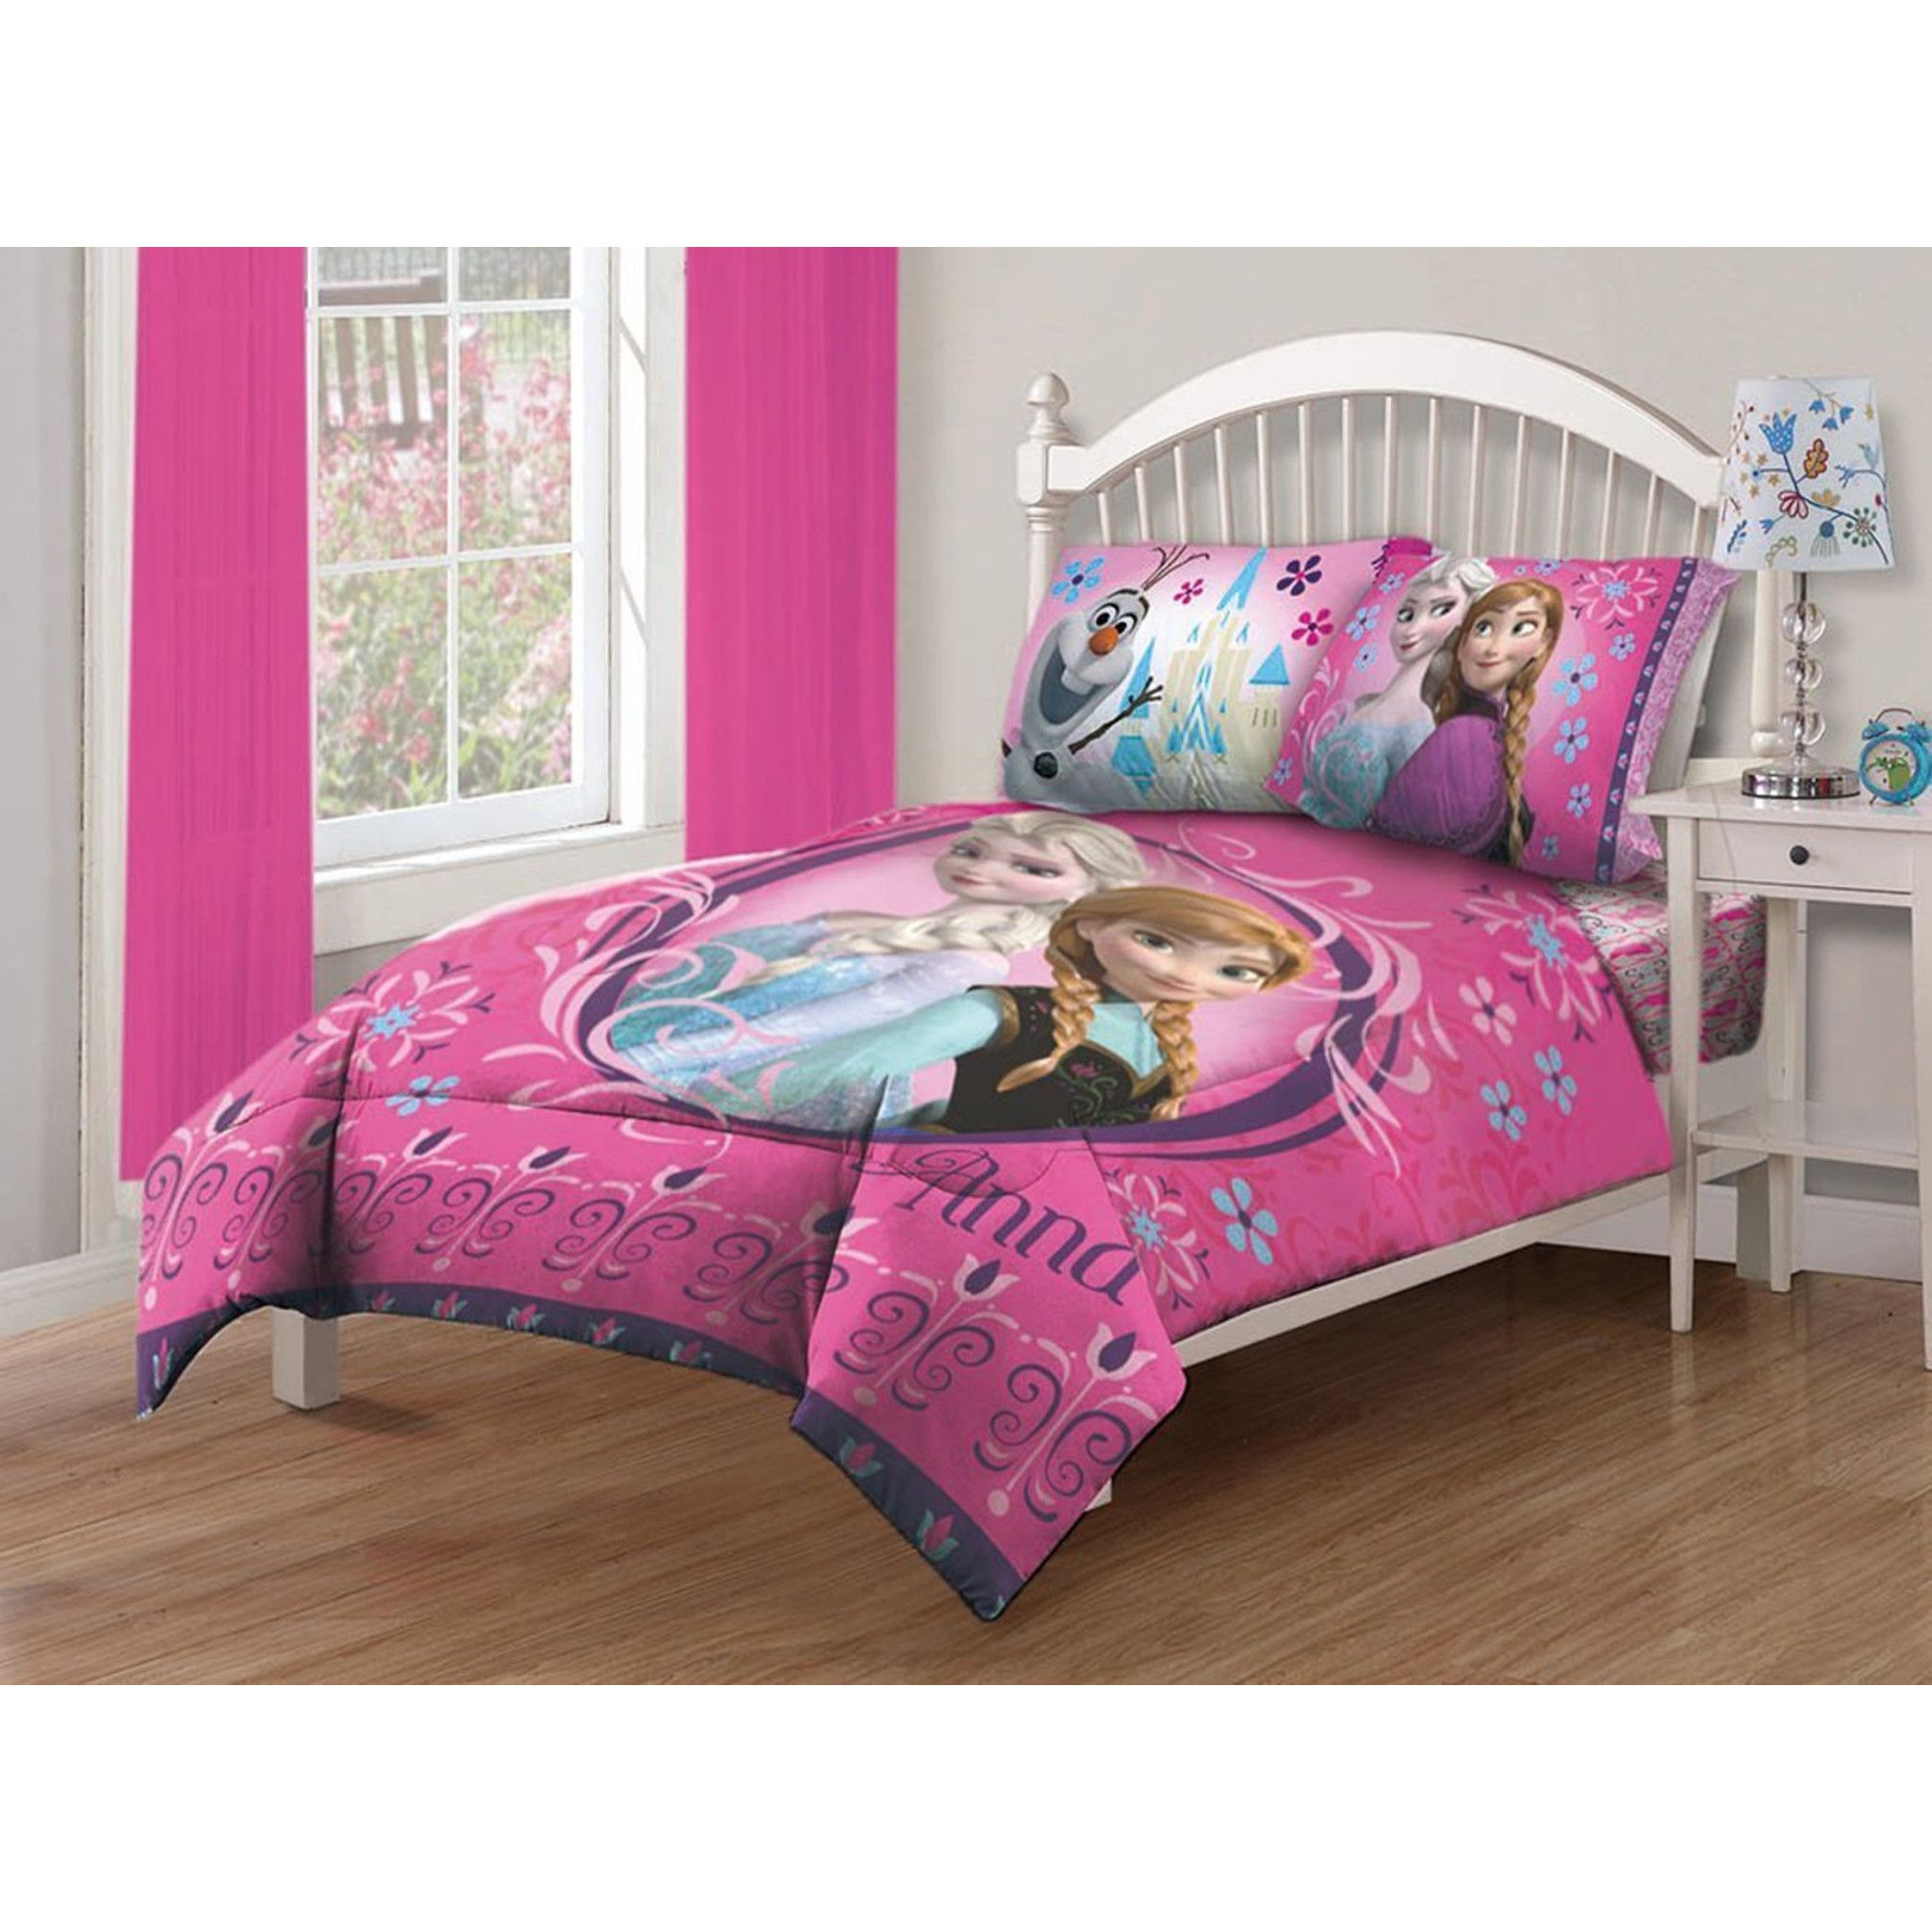 Disney Frozen Nordic Florals 4 Piece Bed In A Bag With Sheet Set